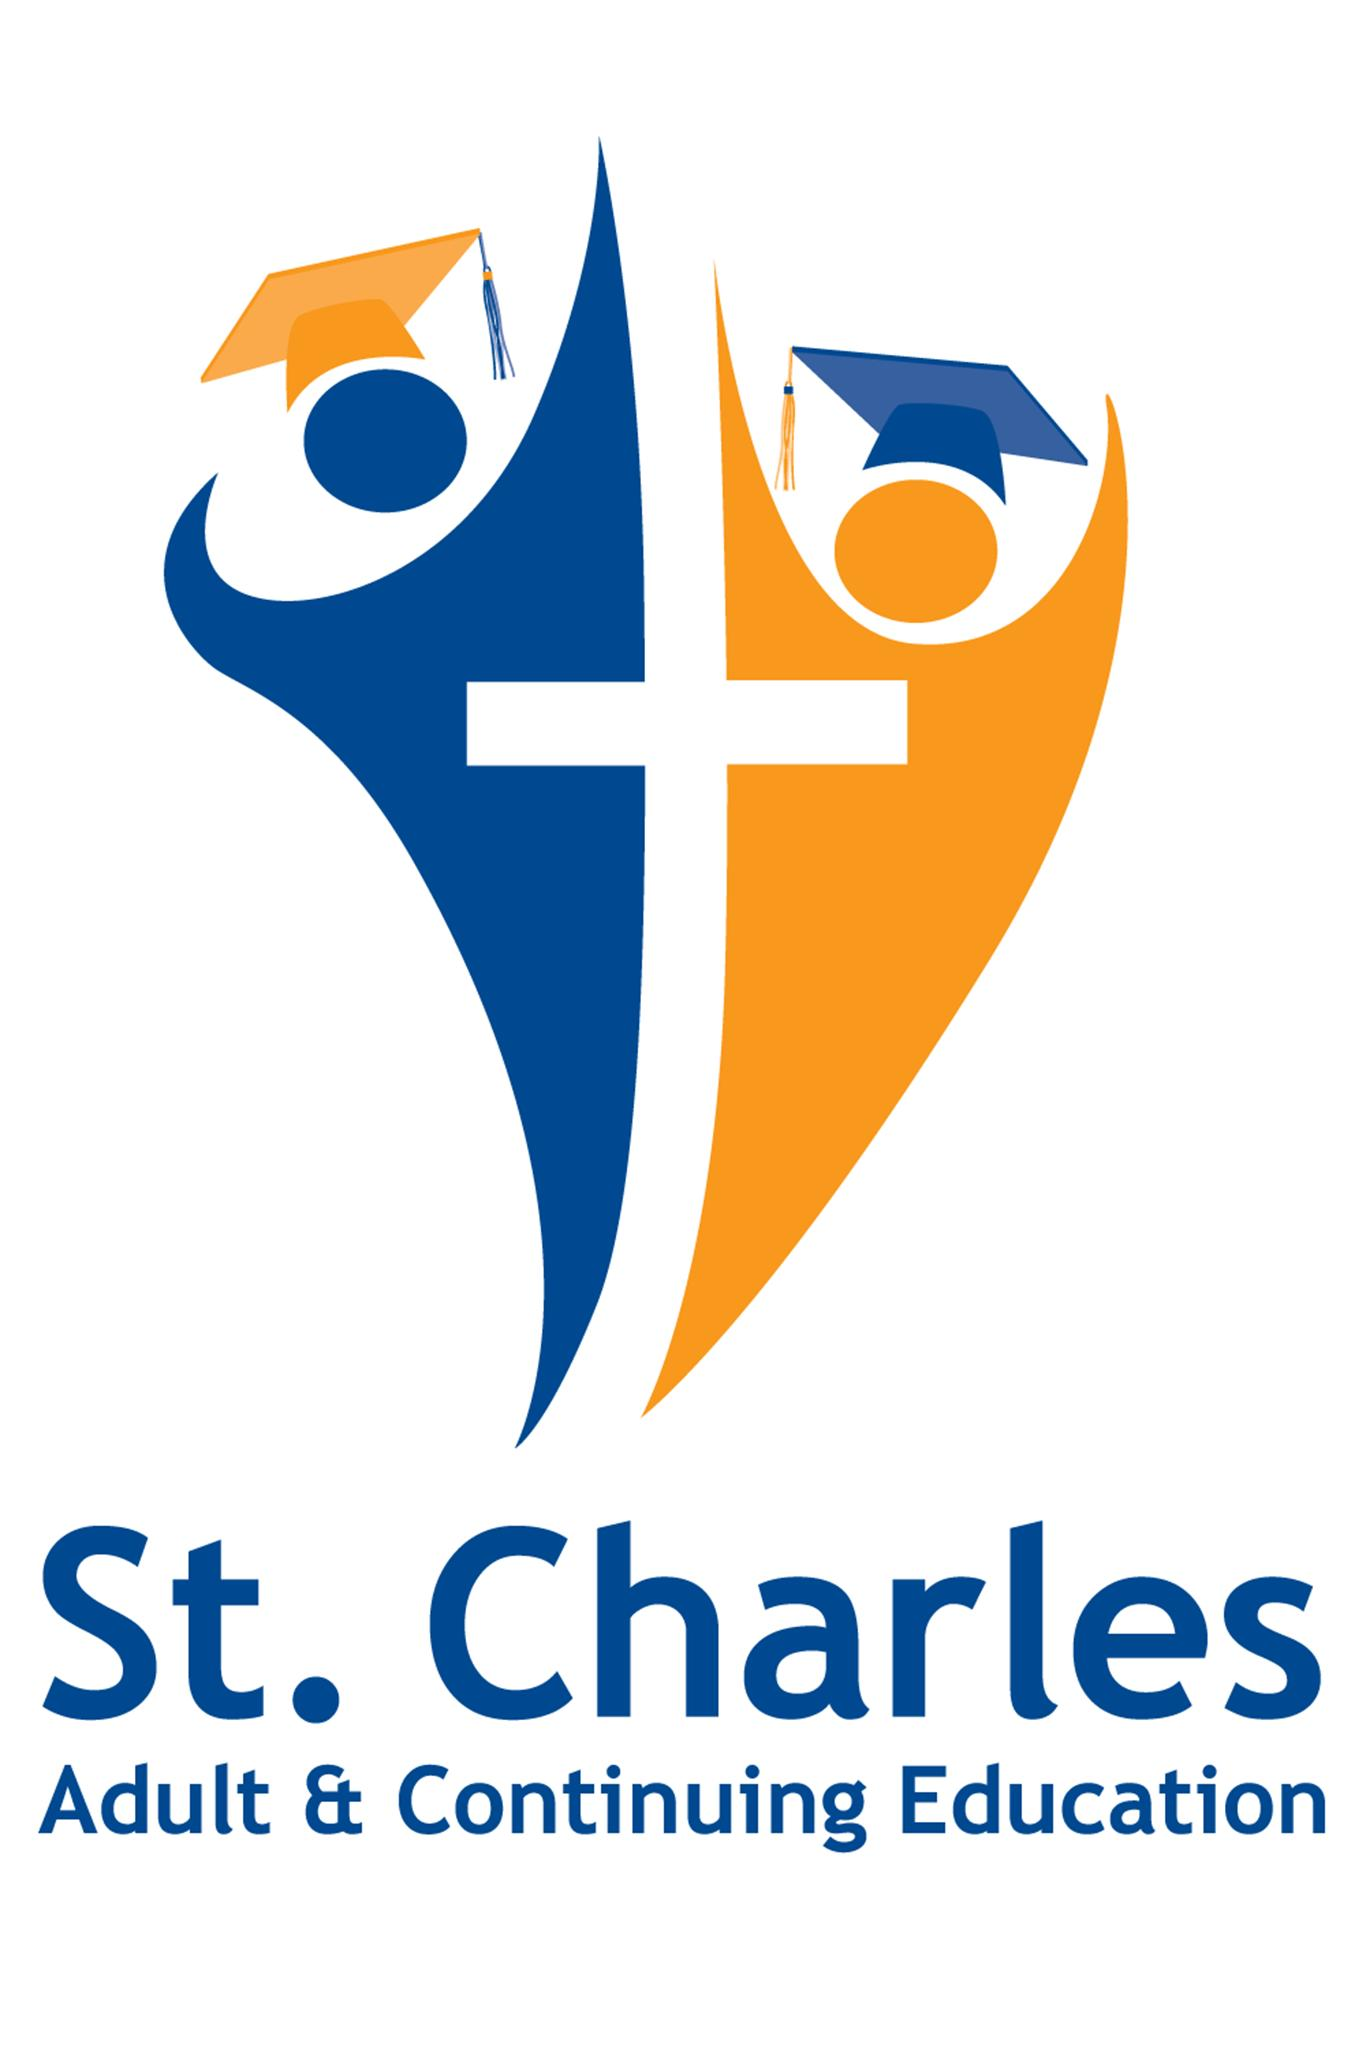 St. Charles Adult and Continuing Education